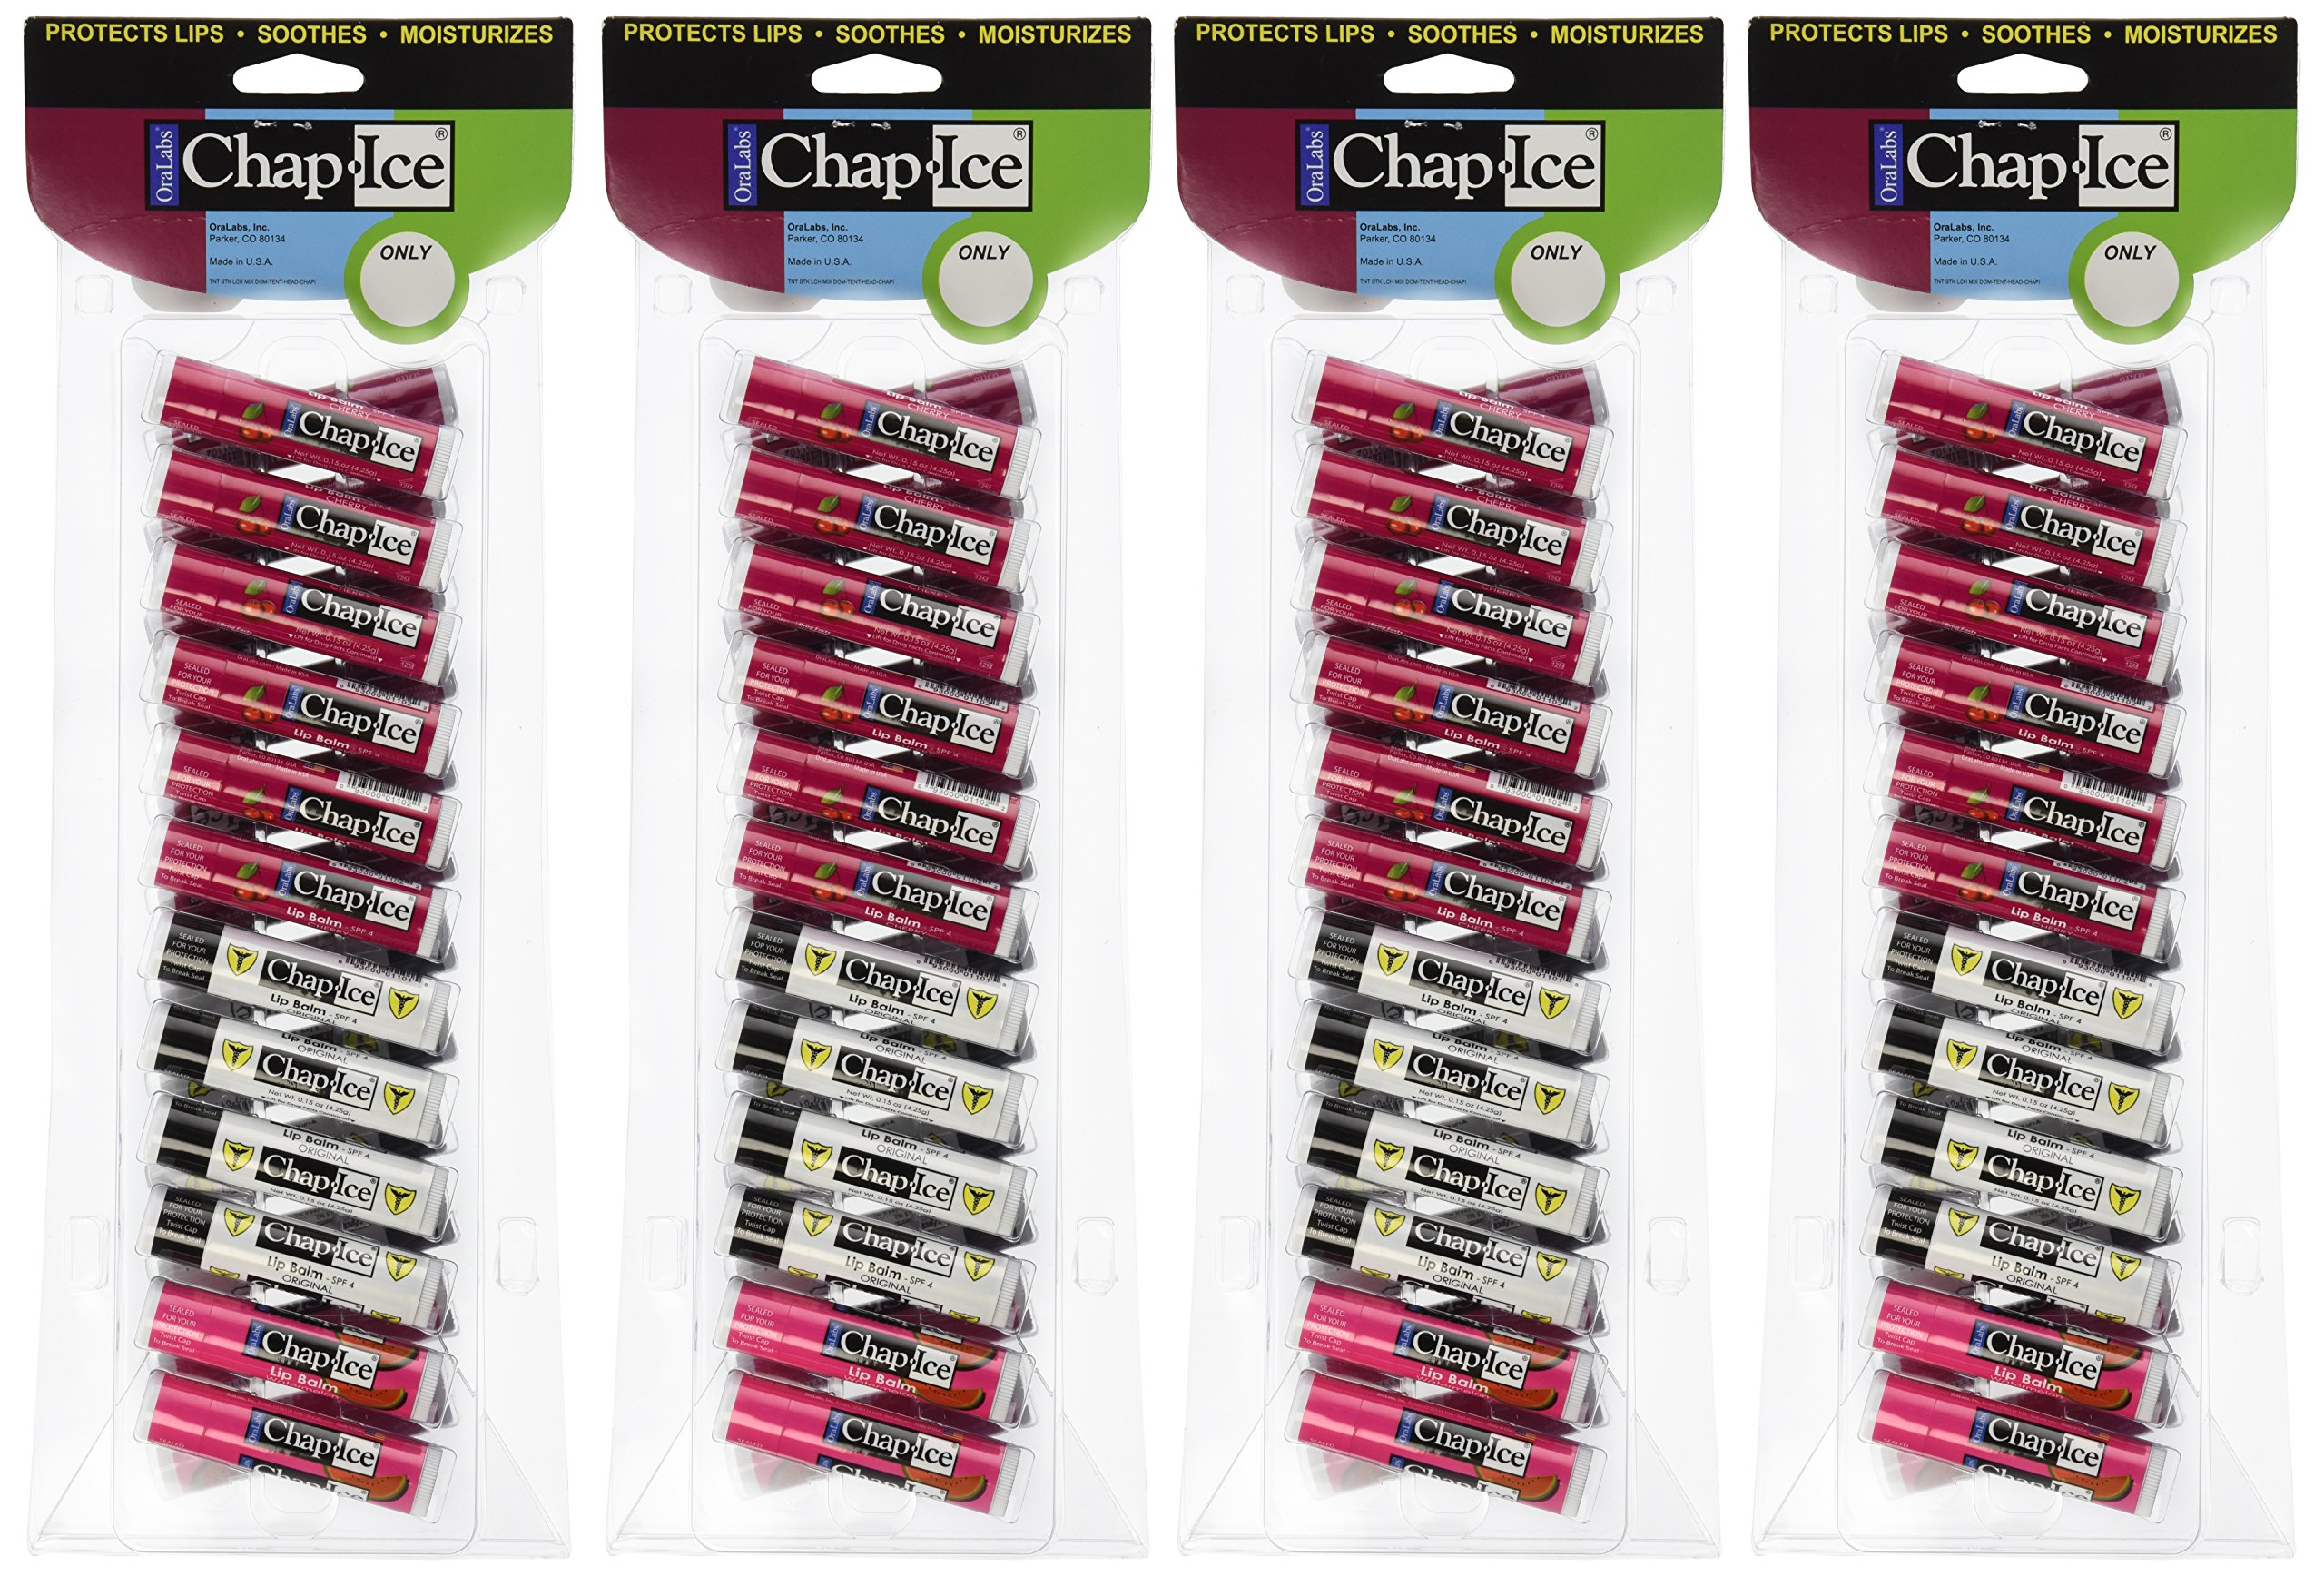 Chap-Ice Assorted Lip Balm - 24 ct (Pack of 4)